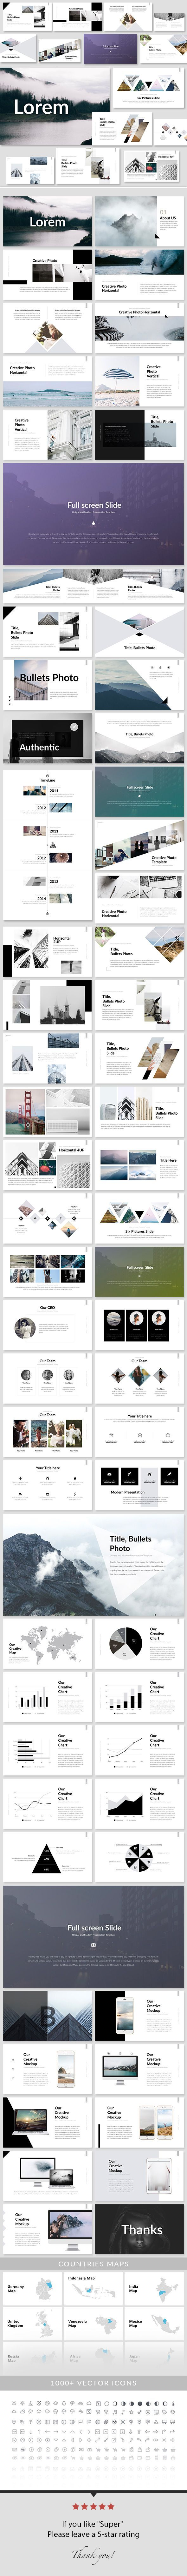 Business infographic : Lorem Keynote Presentation Template Creative ...